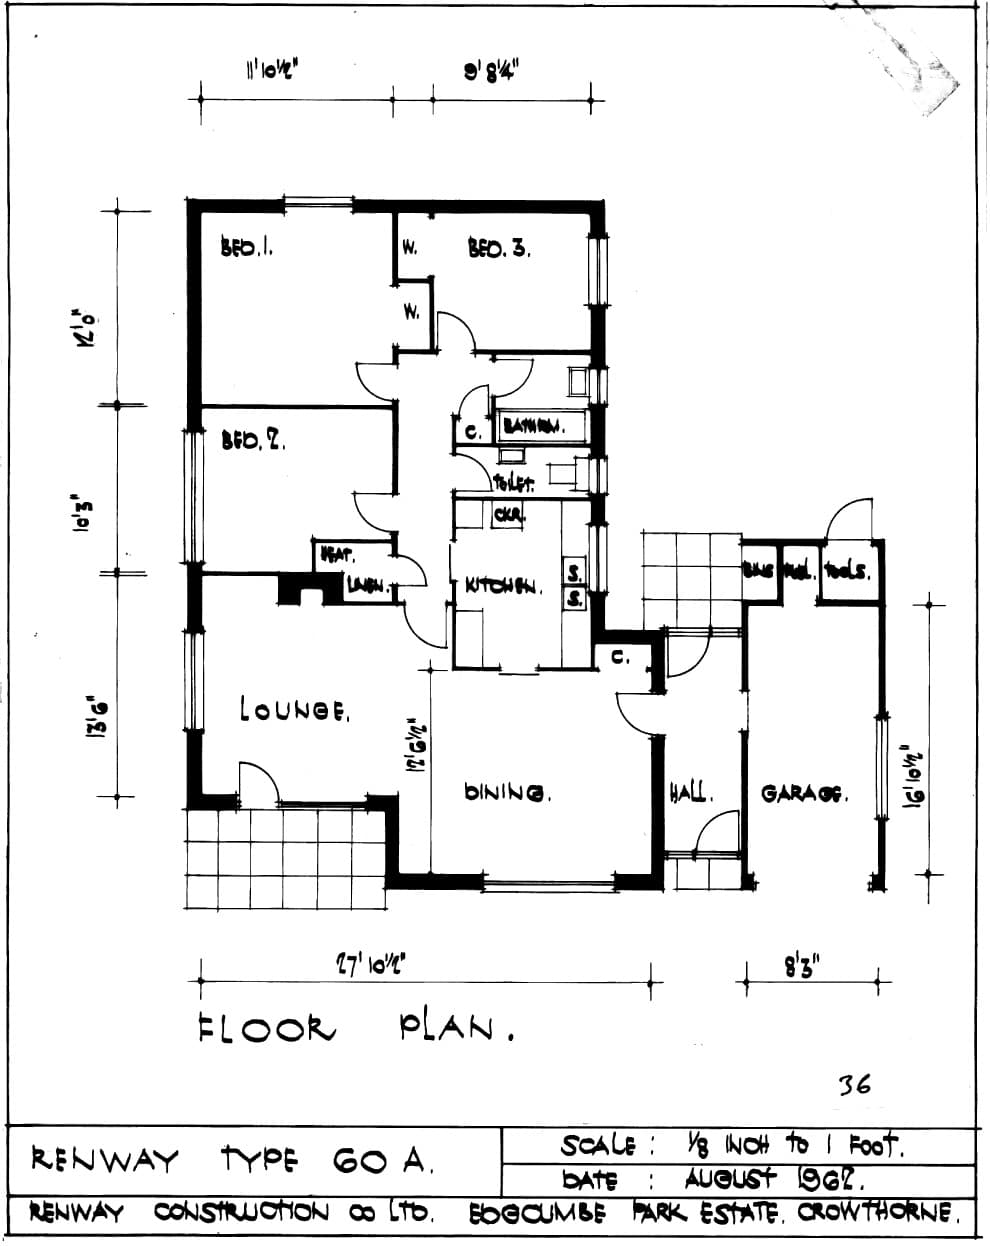 House plans and design architectural house plans bungalow Architectural house plans